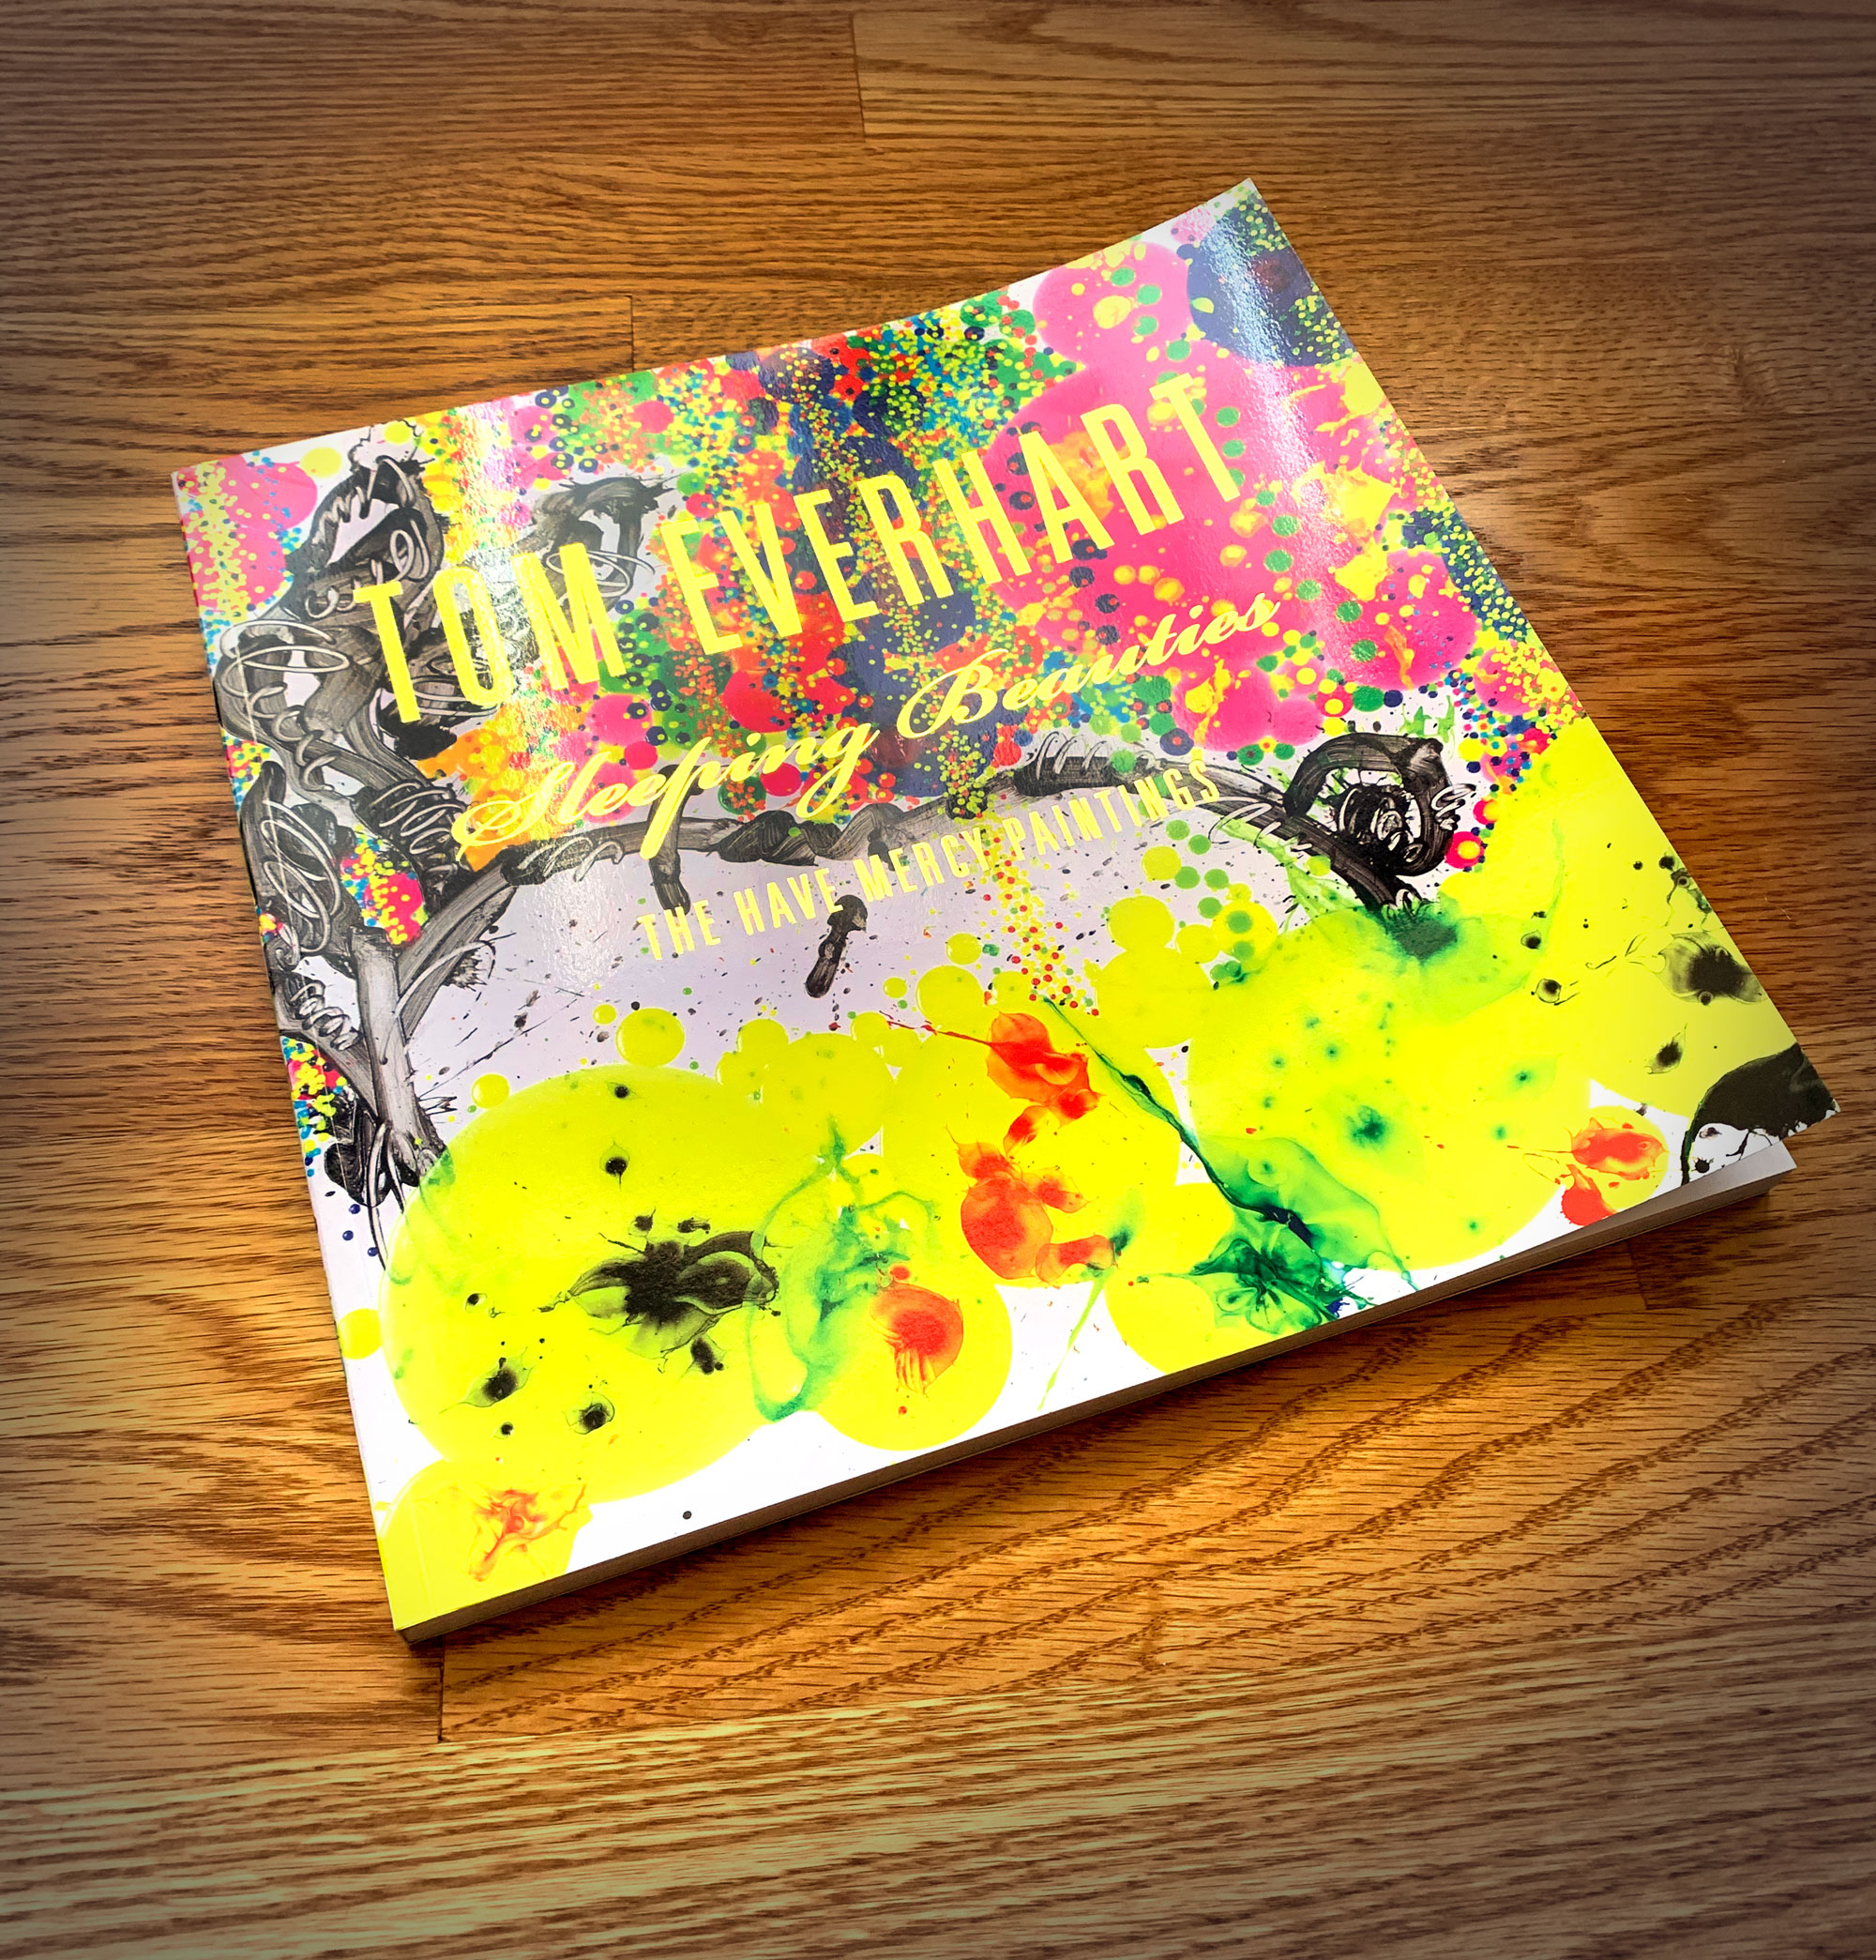 Included with print purchase is a signed and matched number copy of Tom Everhart's newest book  (160 pages)   Sleeping Beauties; The Have Mercy Paintings.  A $125 value.